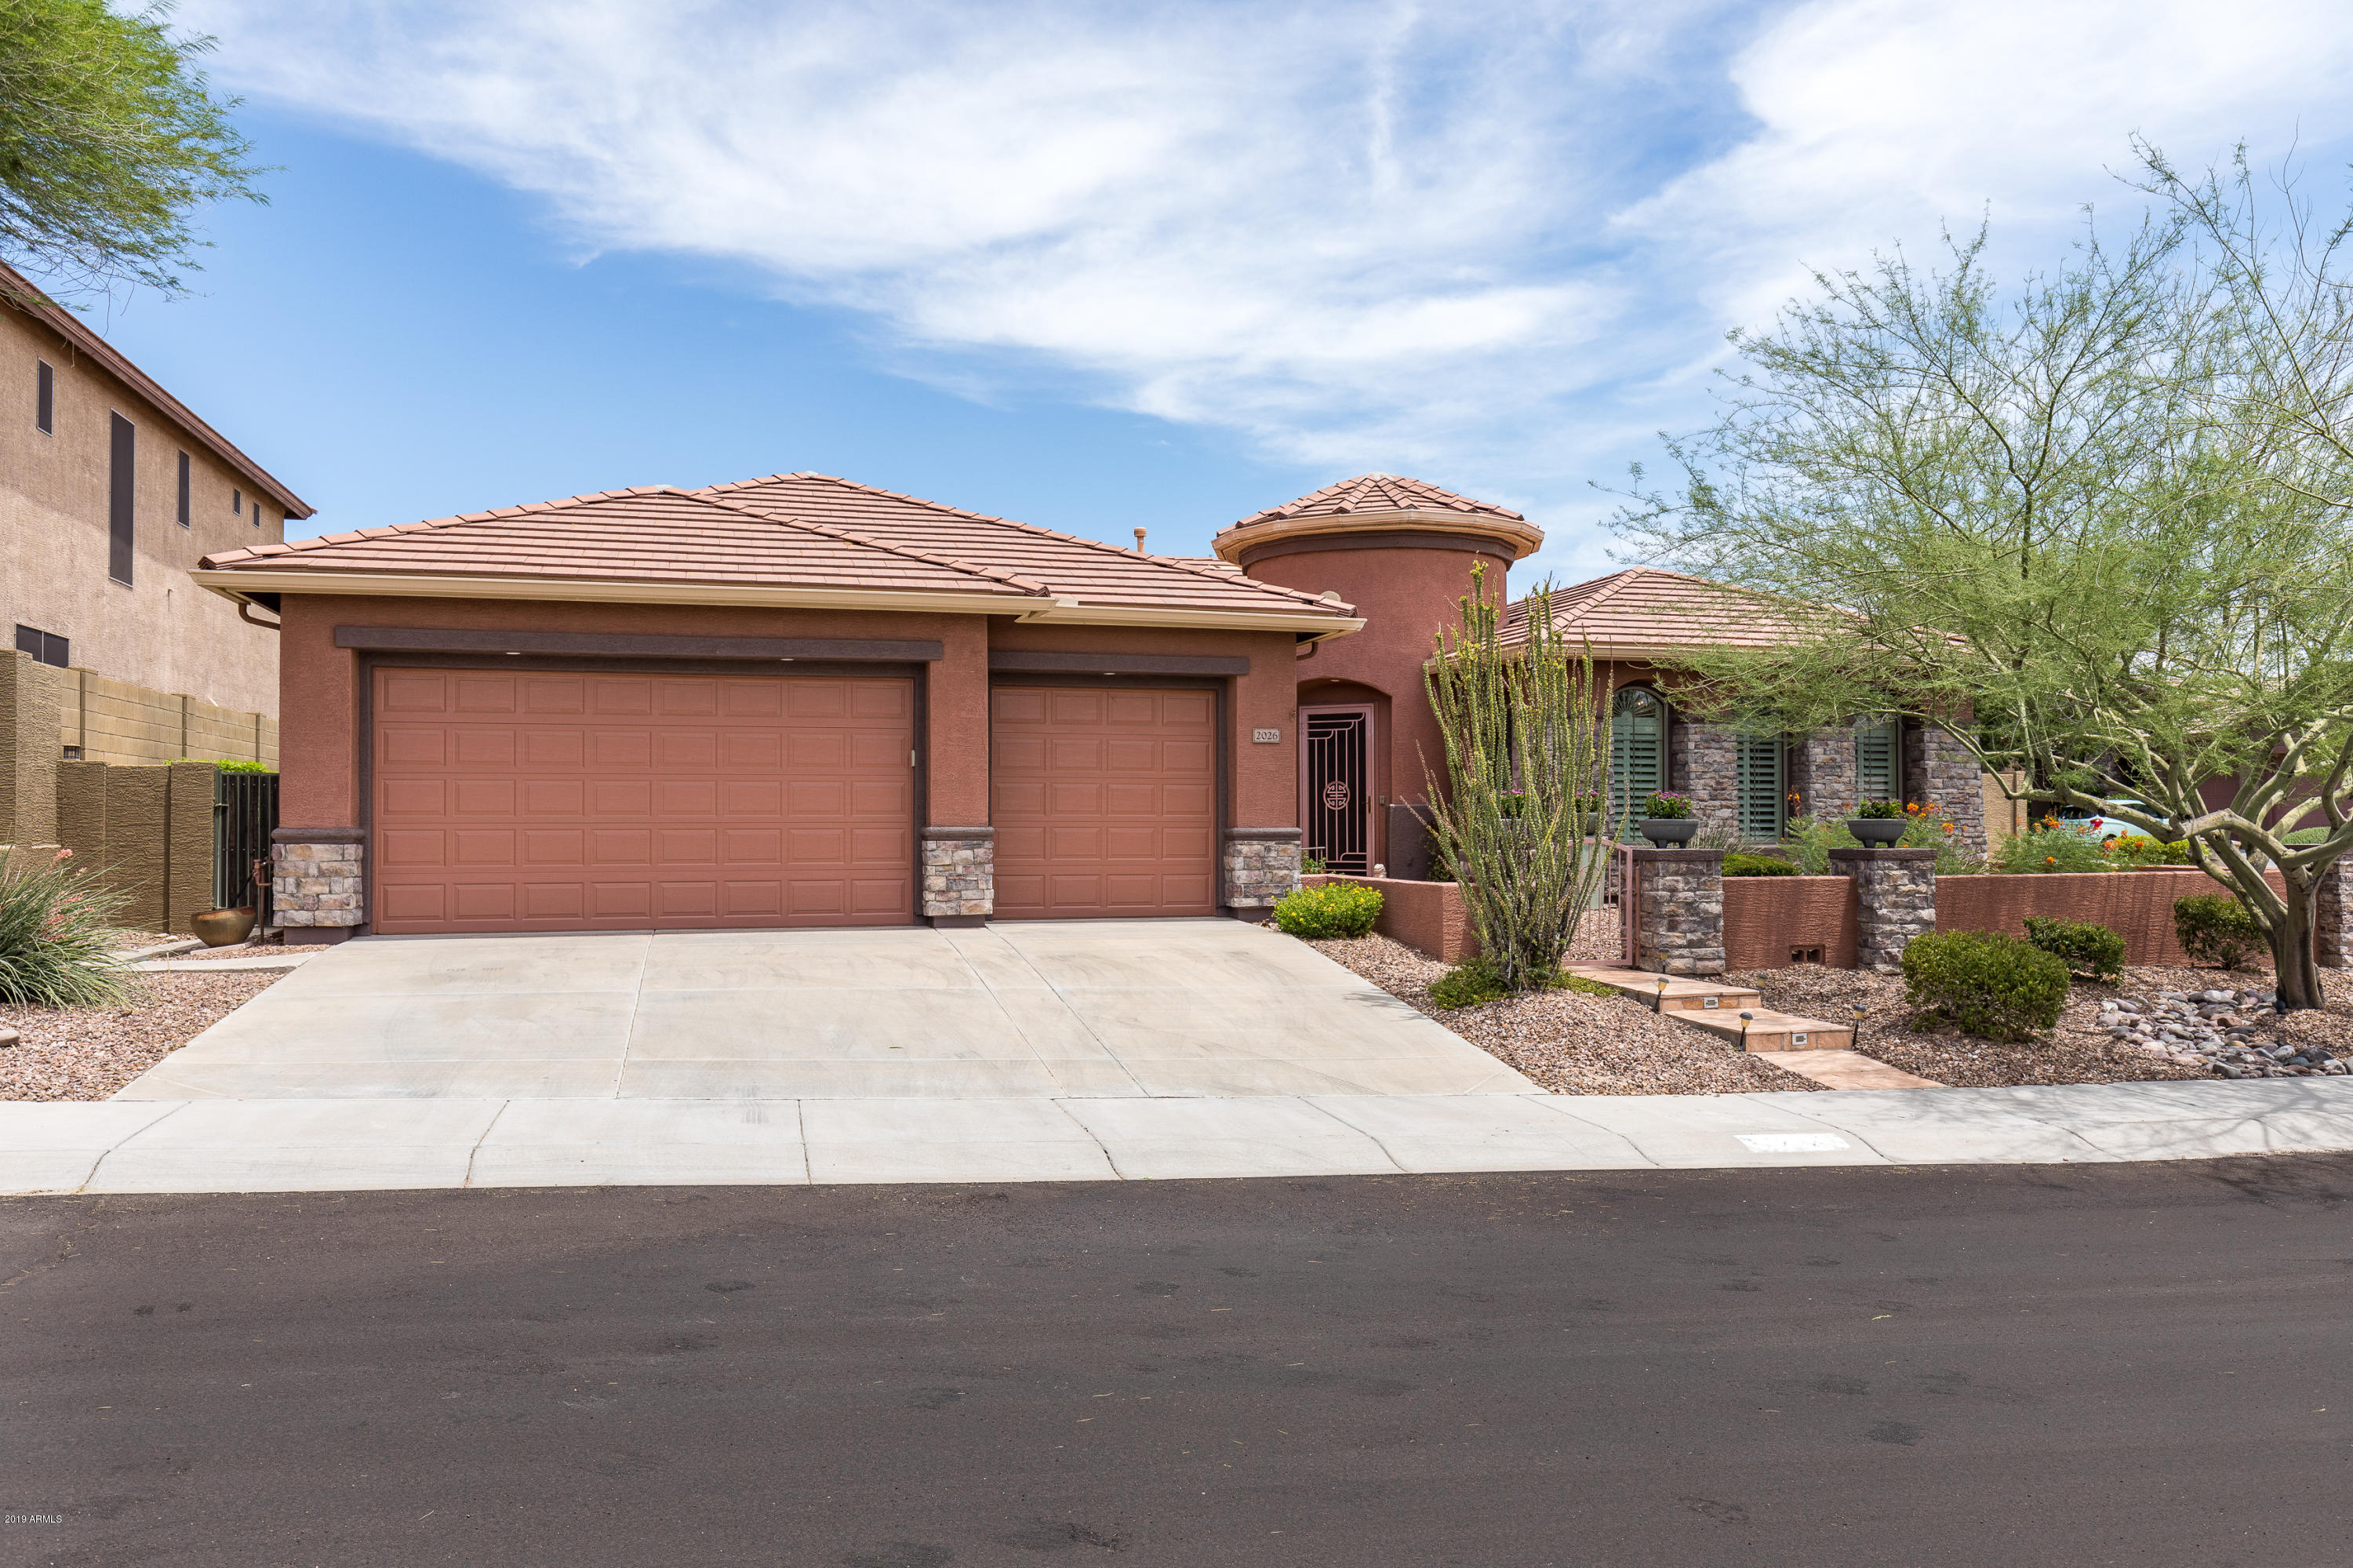 2026 W HIDDEN TREASURE Way, Anthem, Arizona